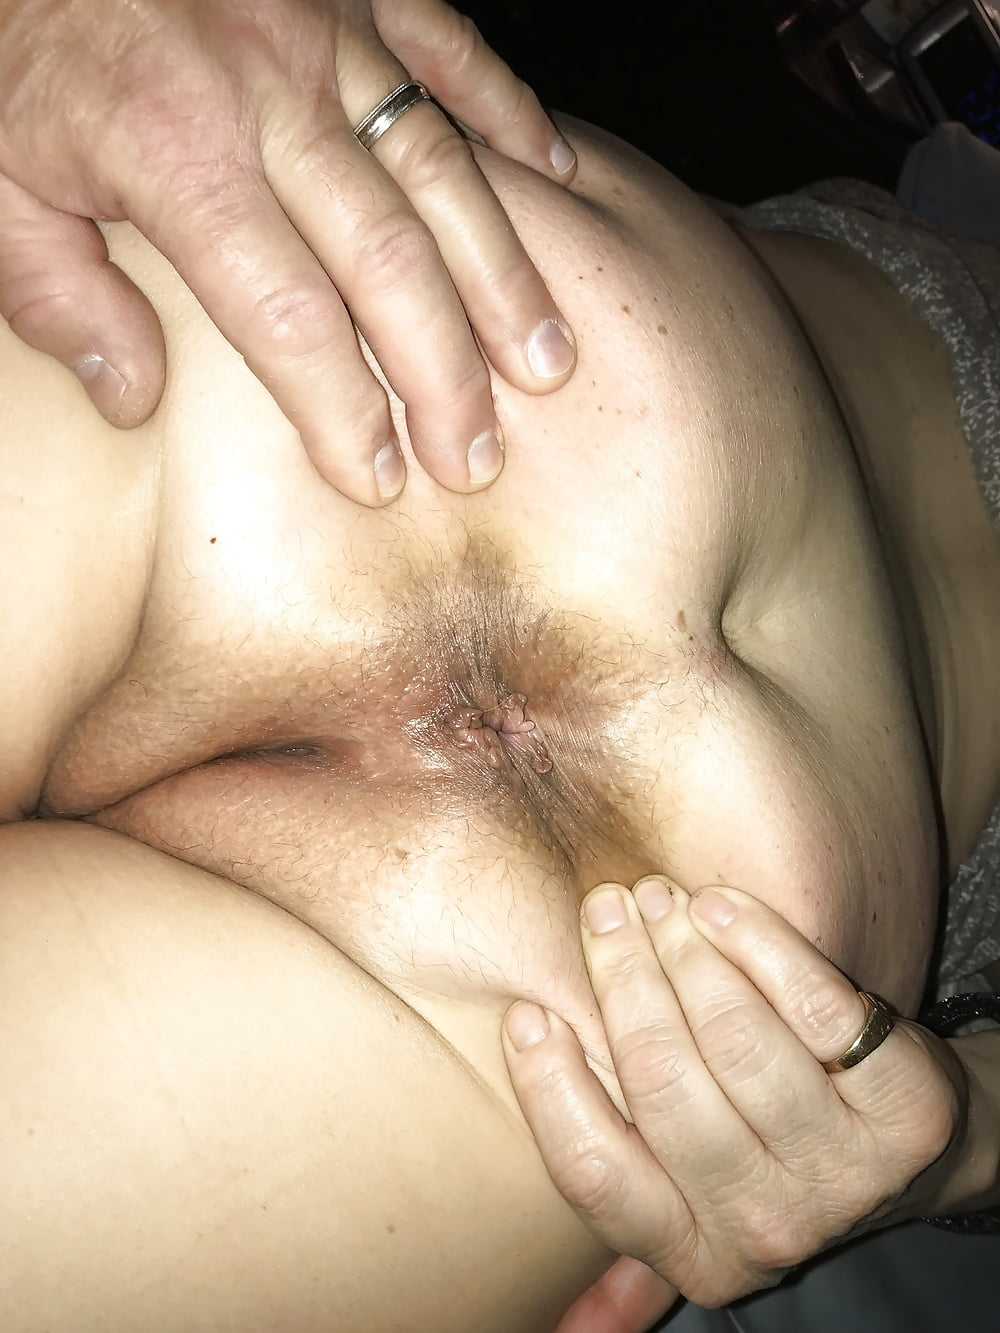 Cock and pissing